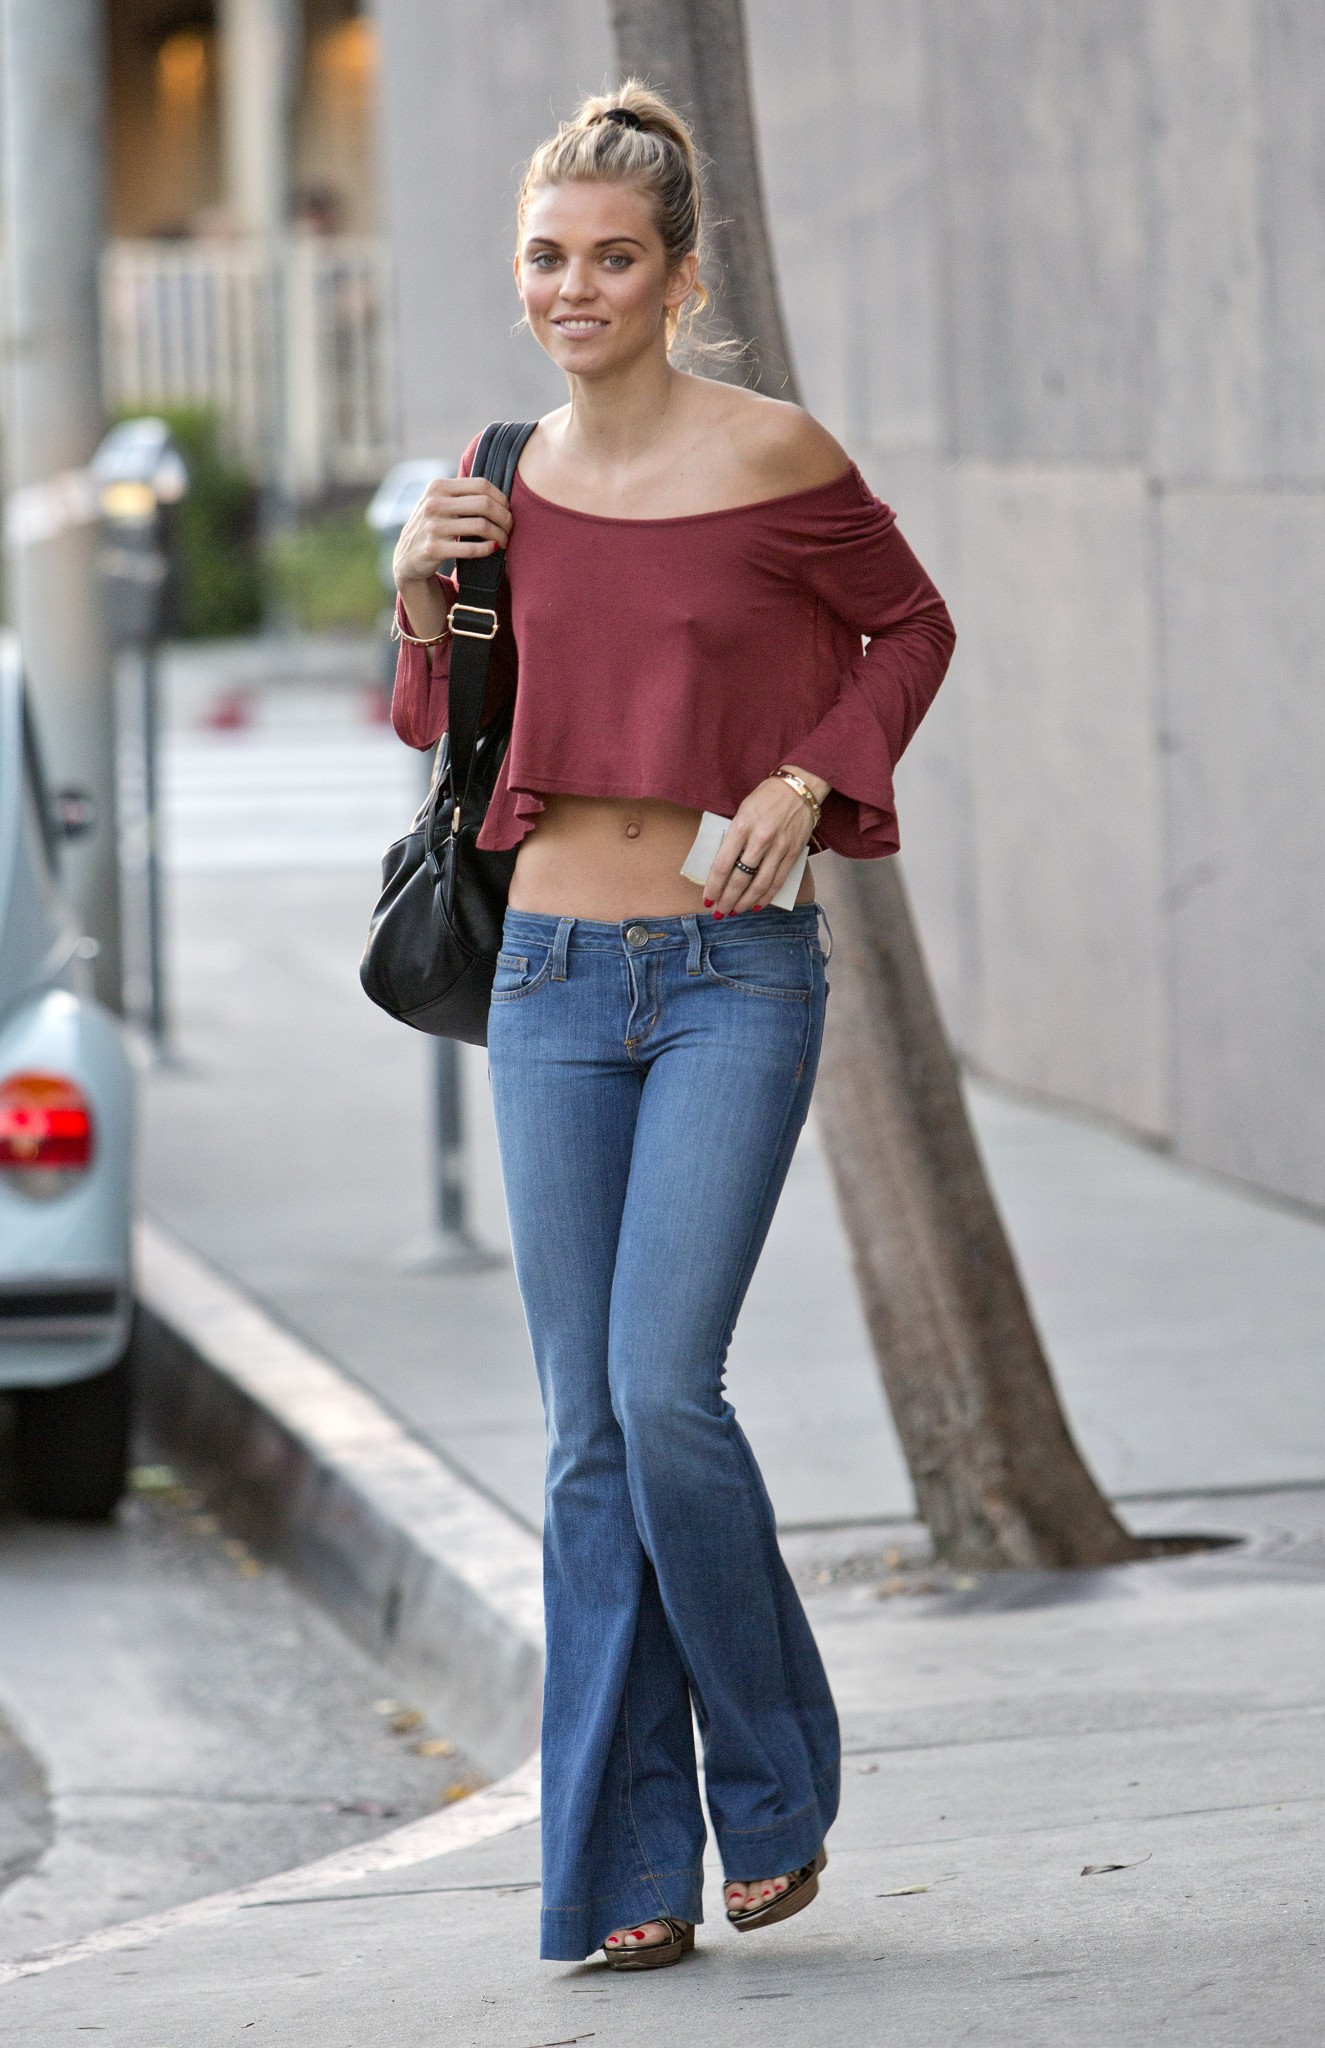 annalynne-mccord-braless-nipples-pokies-while-out-shopping-08